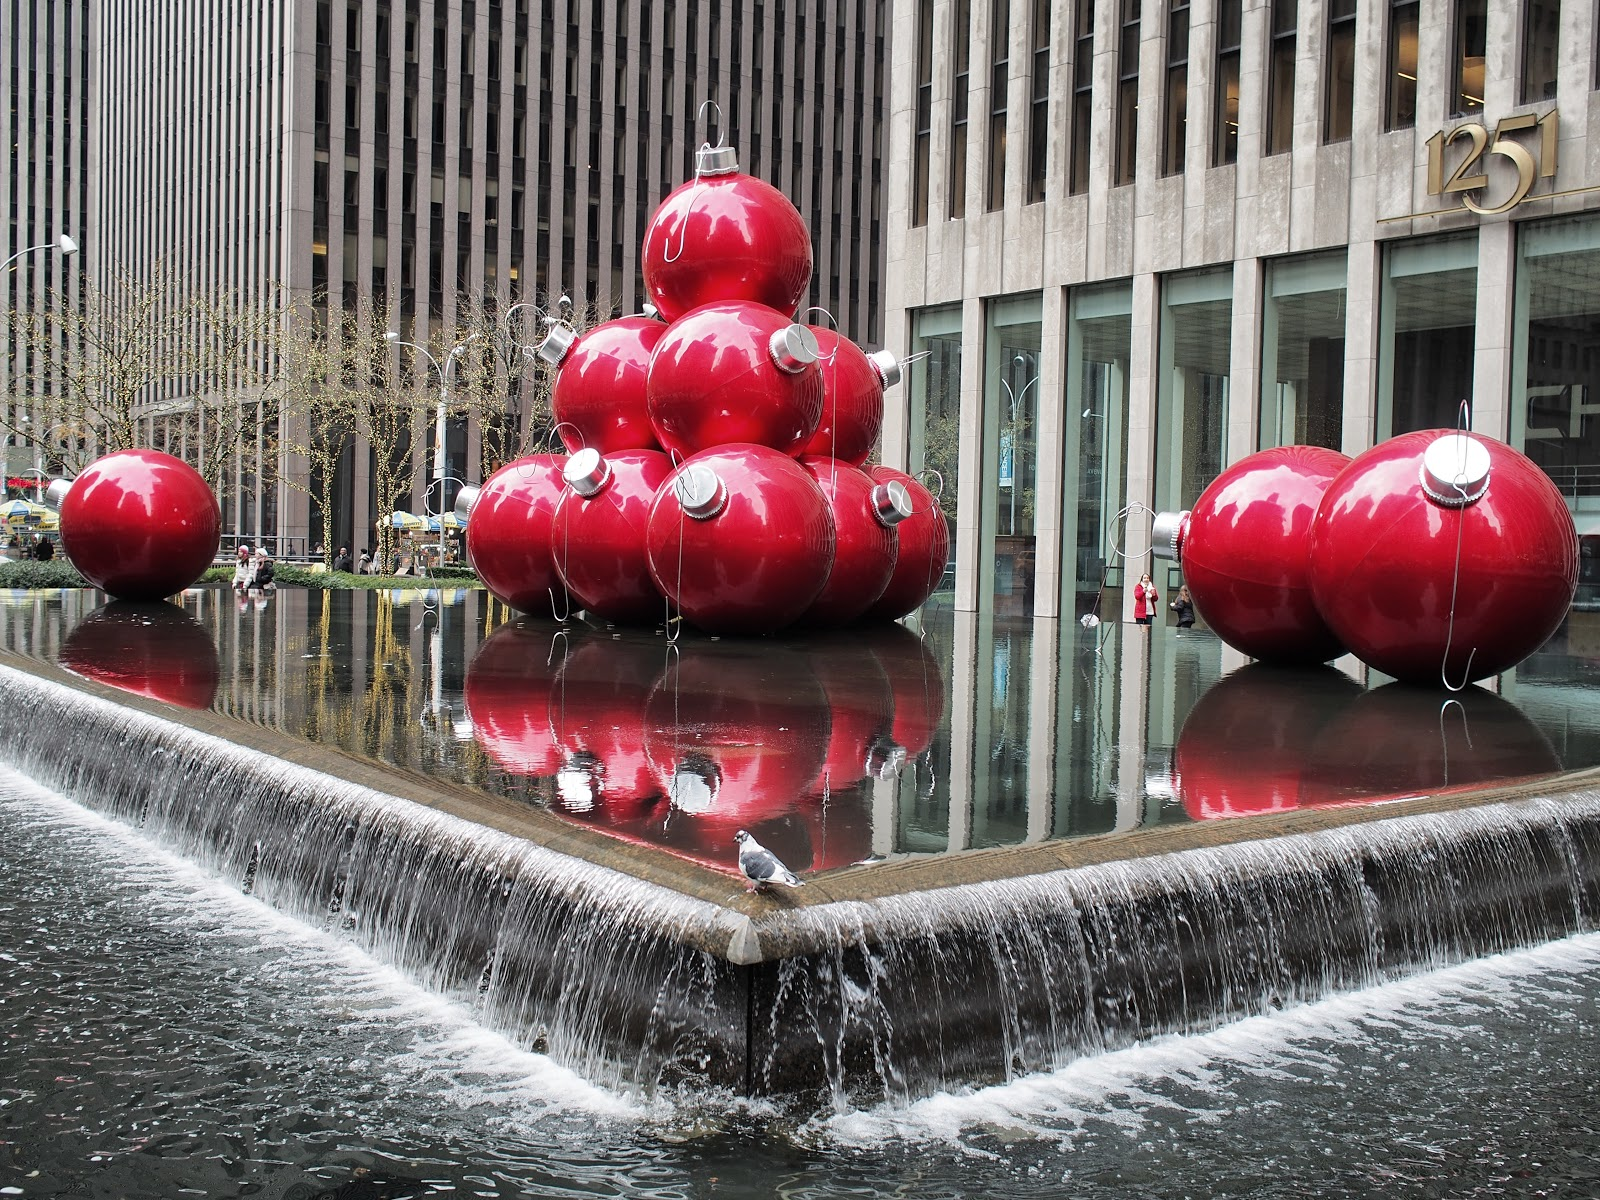 The Red Ornaments of 1251 Avenue of the Americas #redornaments #holidays #besttimeoftheyear ©2014 Nancy Lundebjerg